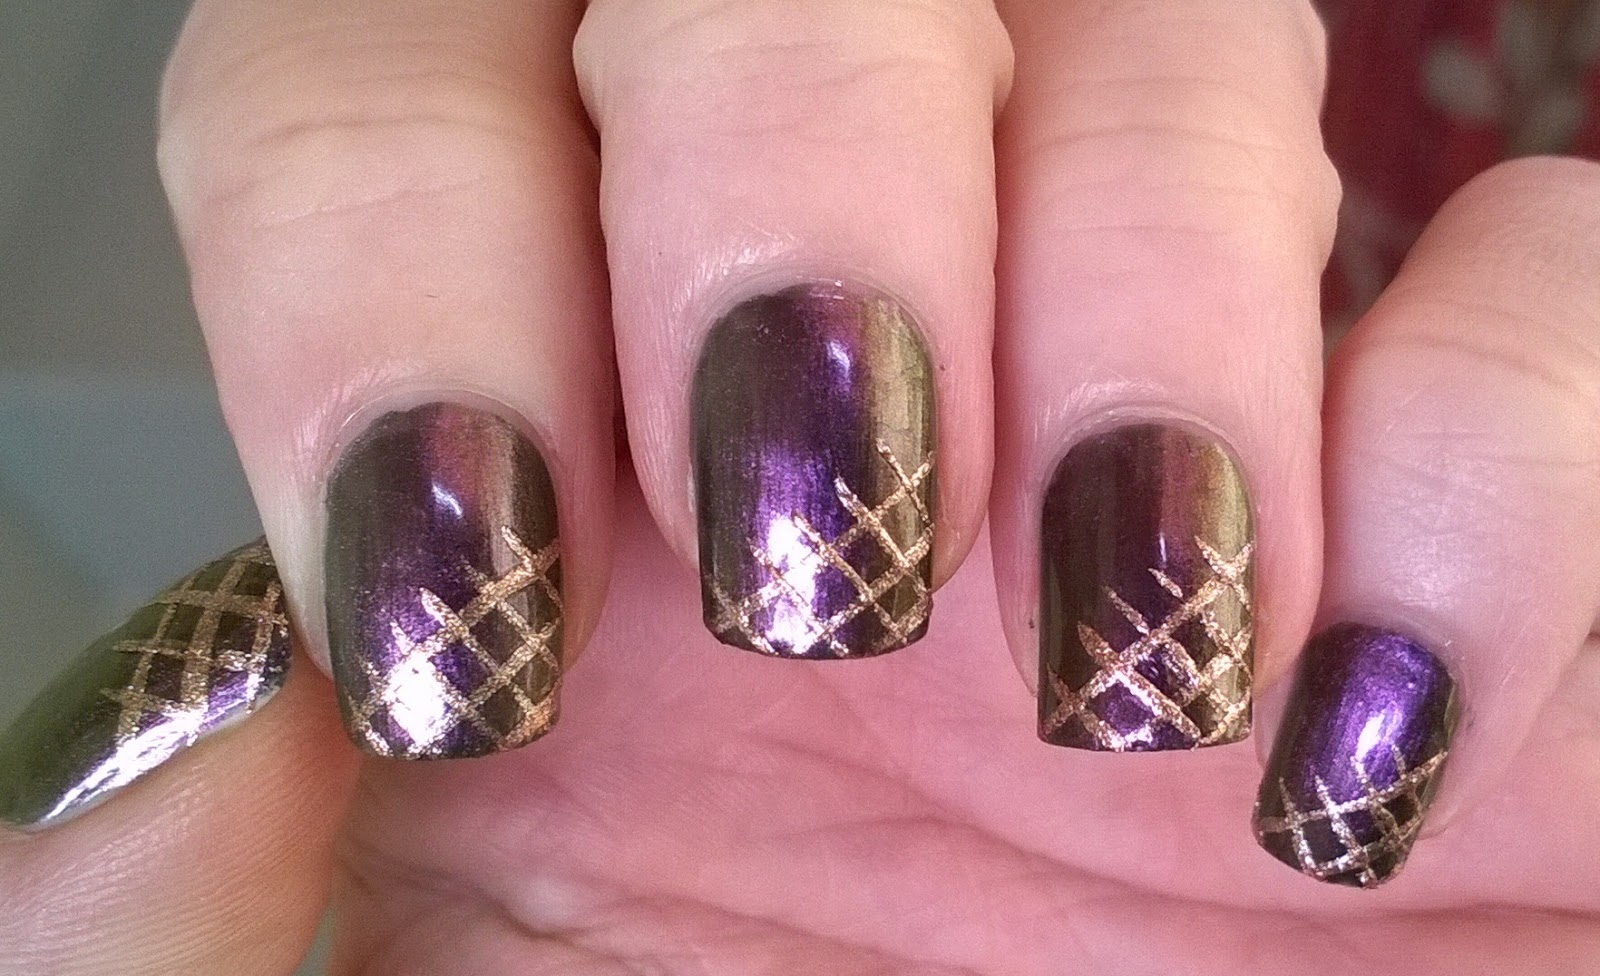 Life World Women Sparkly Metal Flip Nail Art In Colors Of Purple